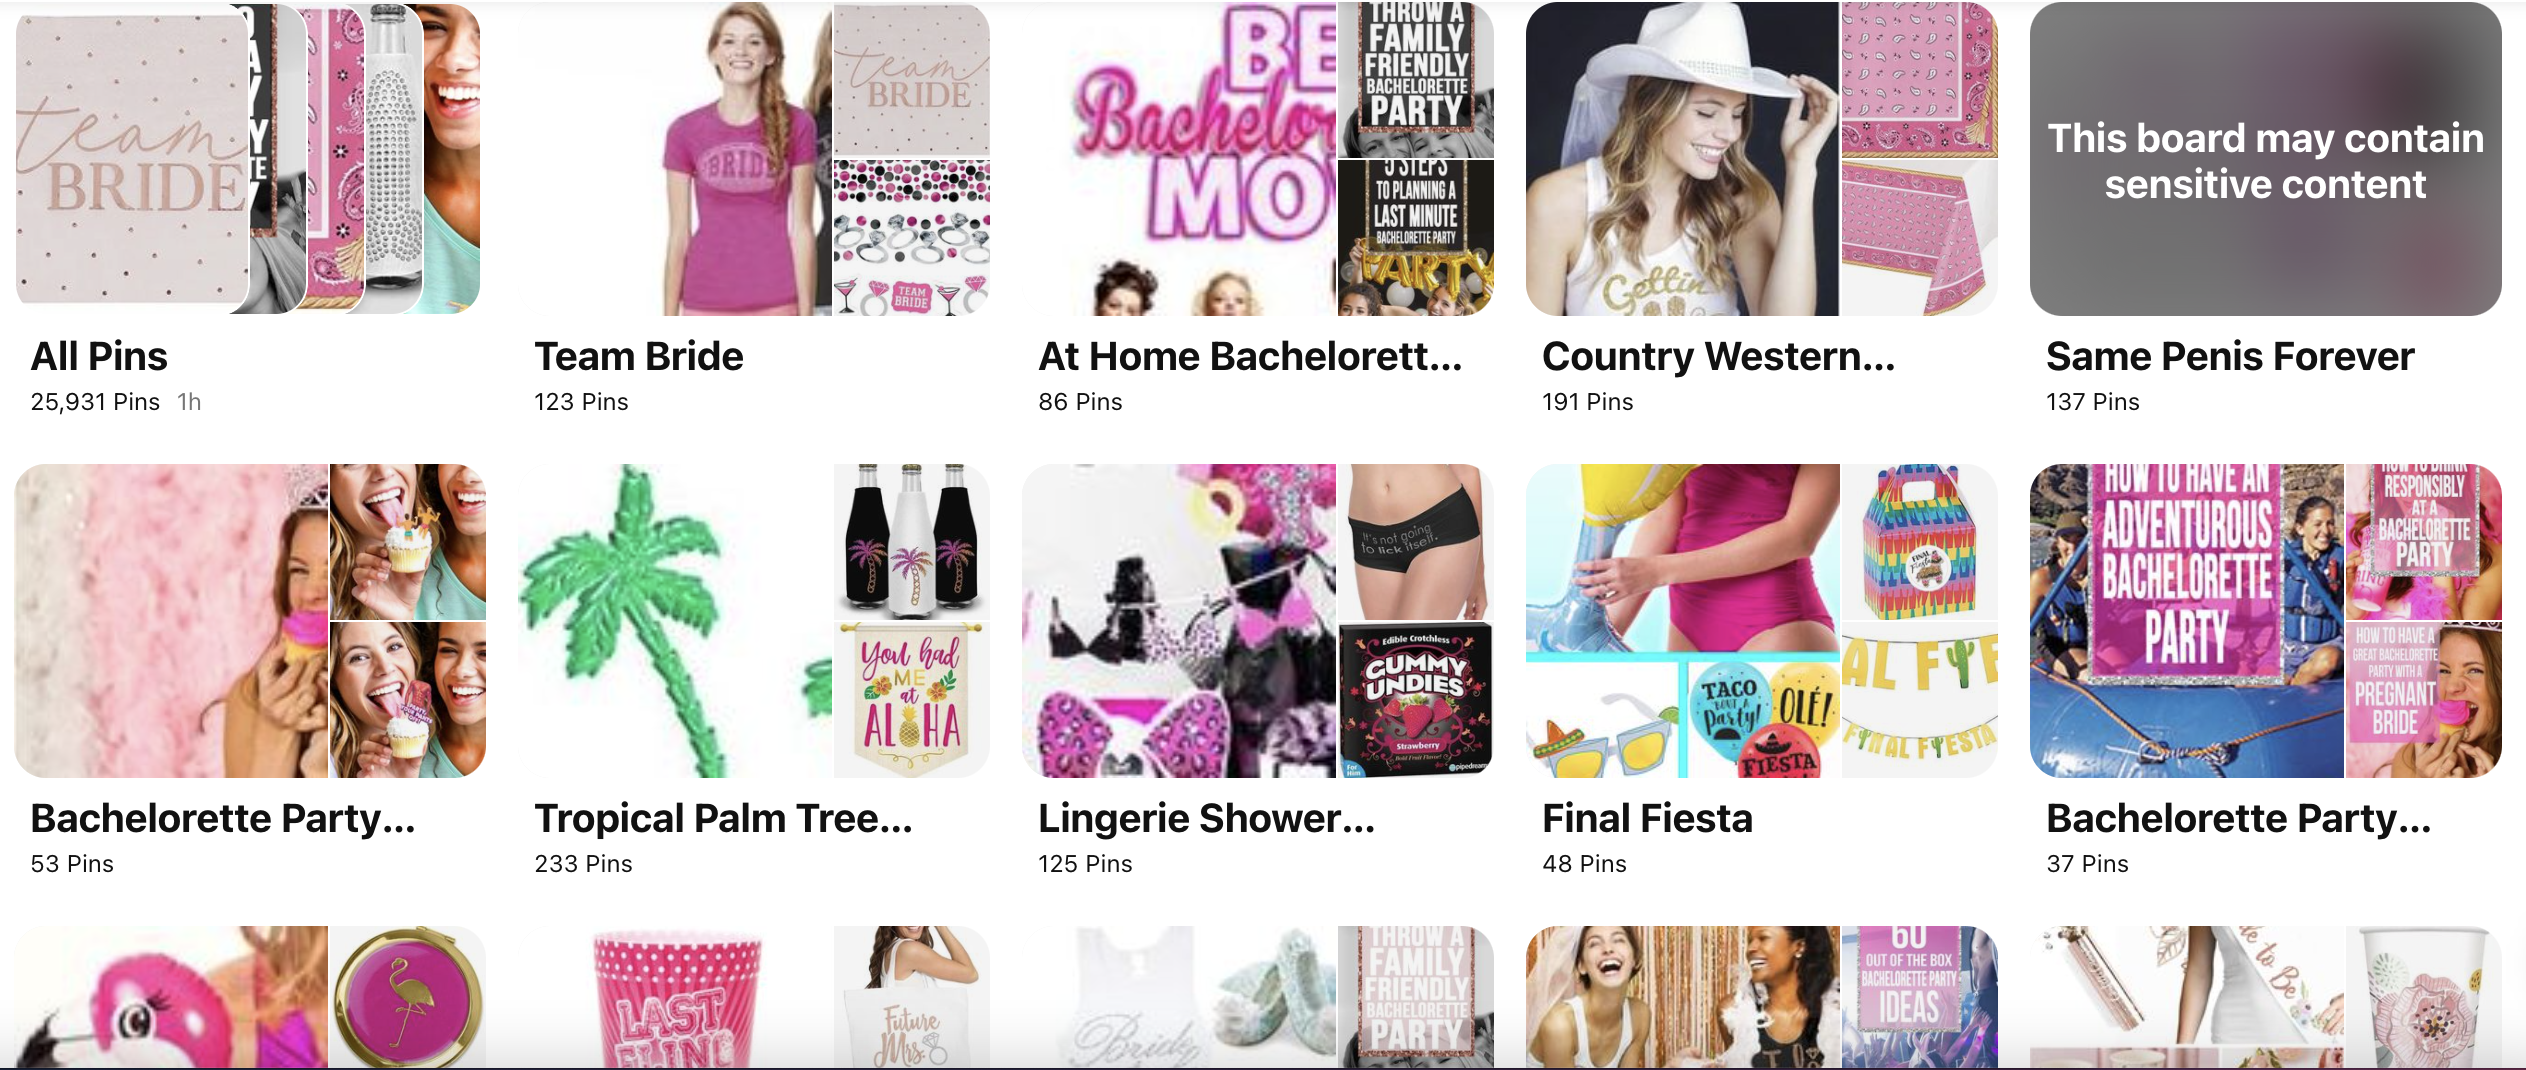 Bachelorette Party Themes on Pinterest: House of Bach